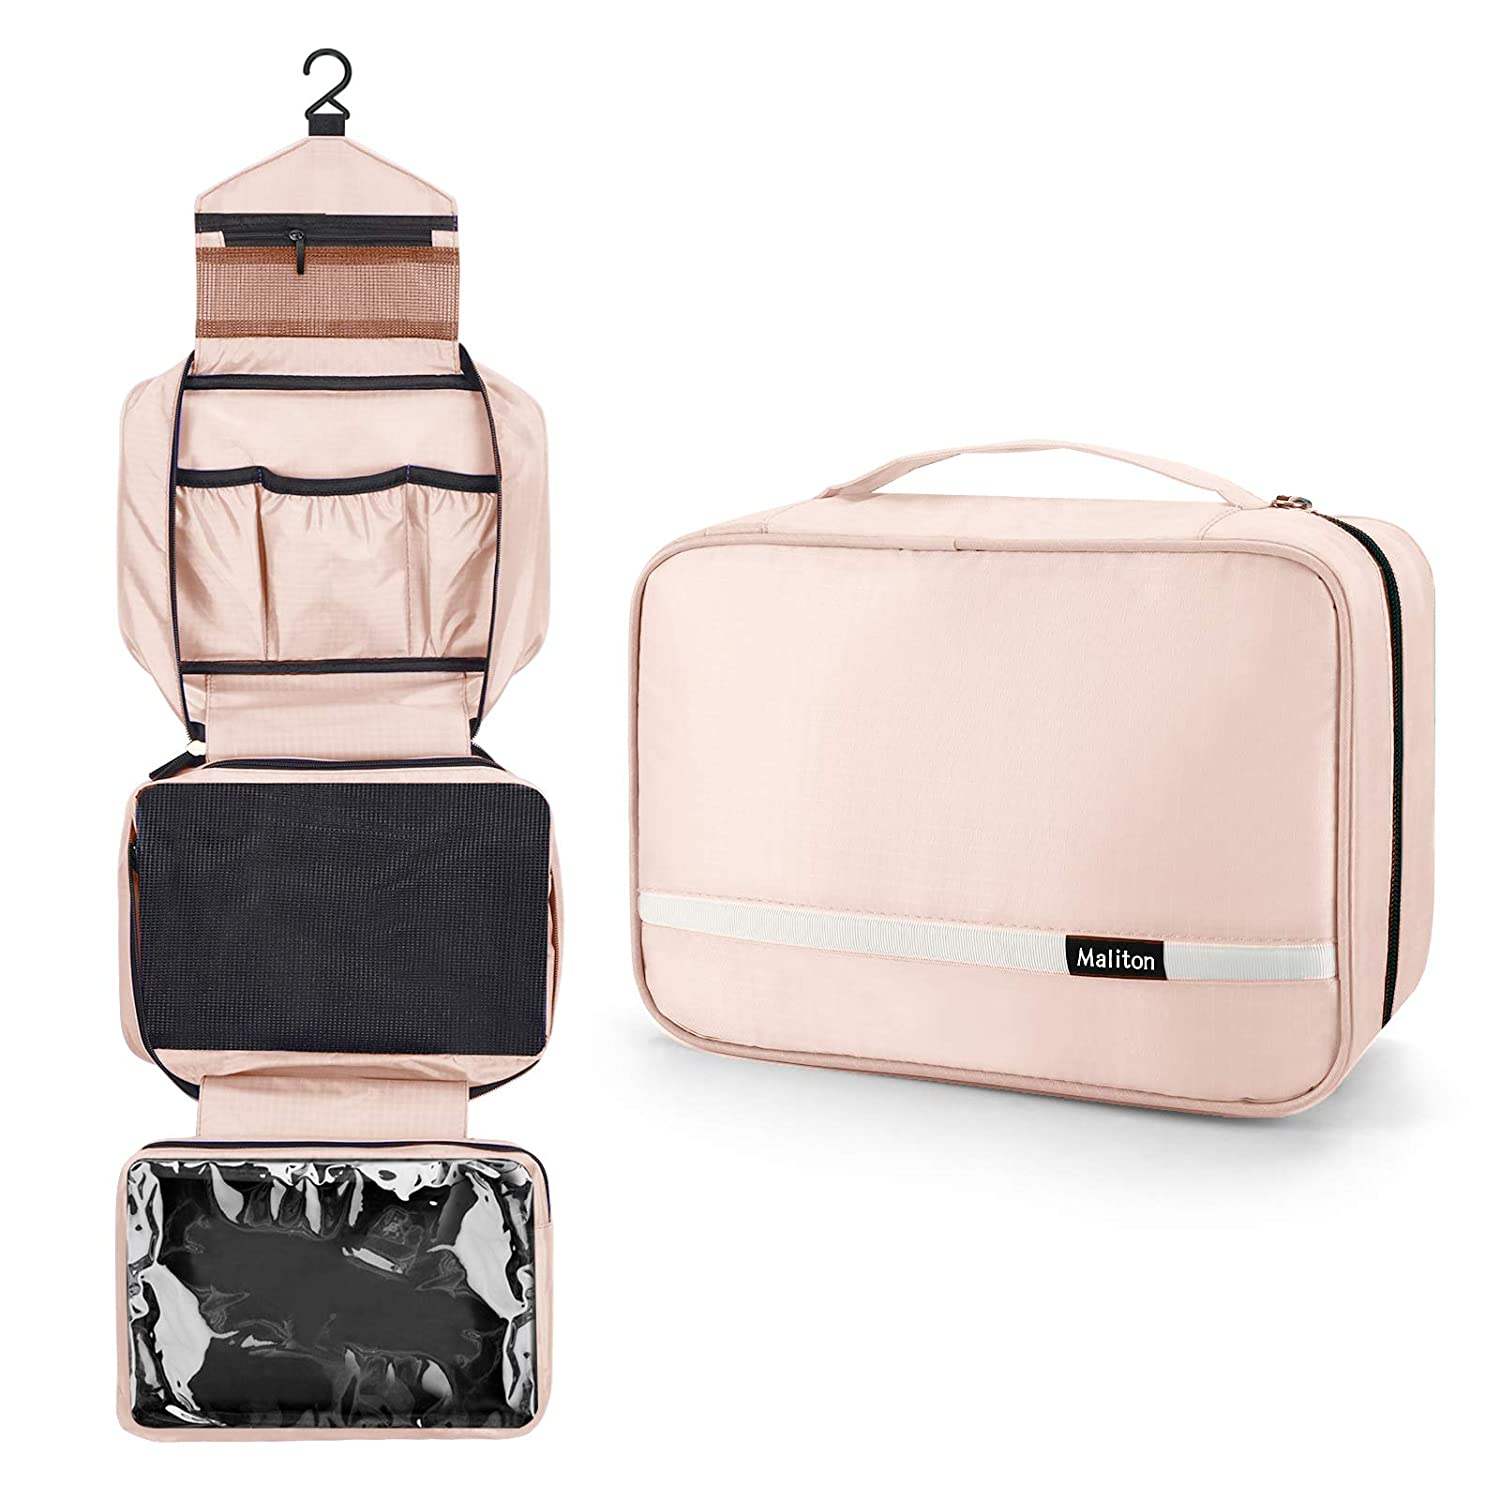 Hanging Toiletry Bag, Travel Toiletry Bag | Foldable Dopp Kit with Large Capacity for Men | 4 Layers Portable Waterproof Hygiene Bag for Women | Travel Bathroom Organizer(Pink) : Beauty